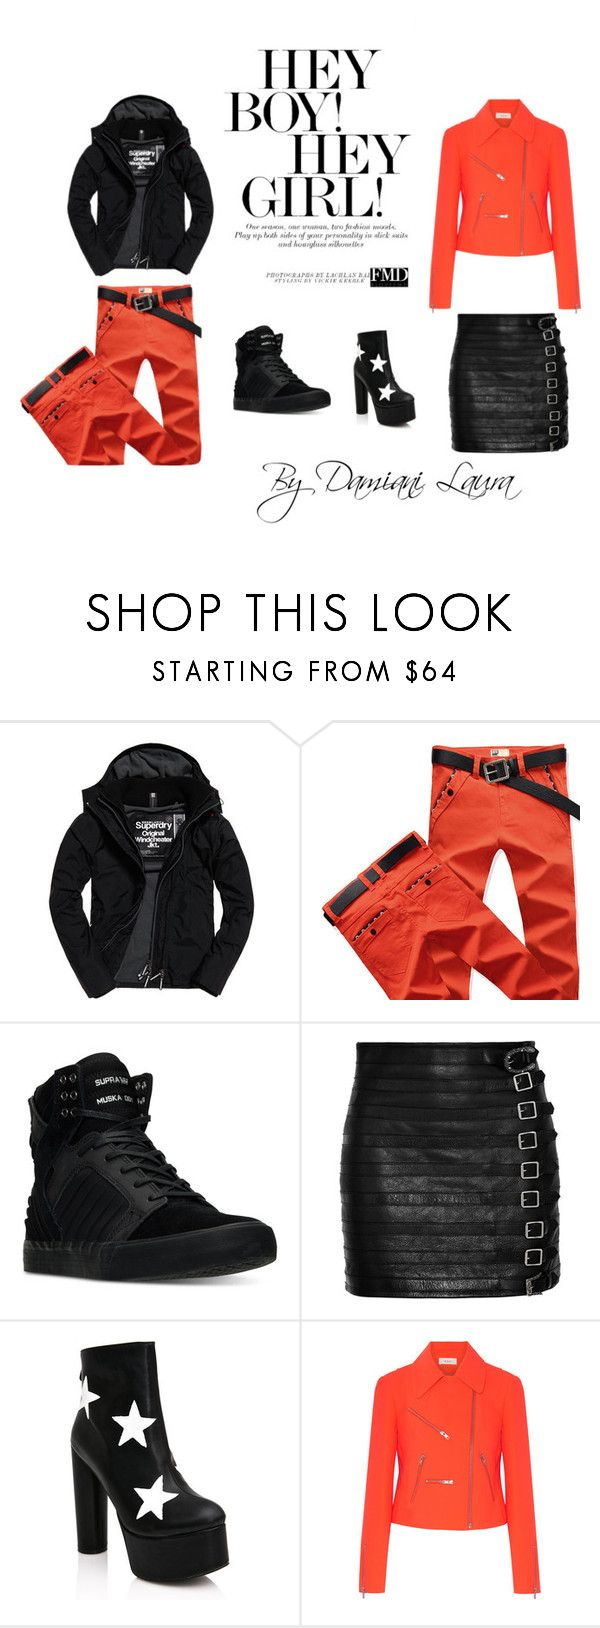 ME TOO by lauradamiani on Polyvore featuring Superdry, Supra, A.L.C., Gucci, Public Desire, men's fashion, menswear, look, fashionset and damianilaura